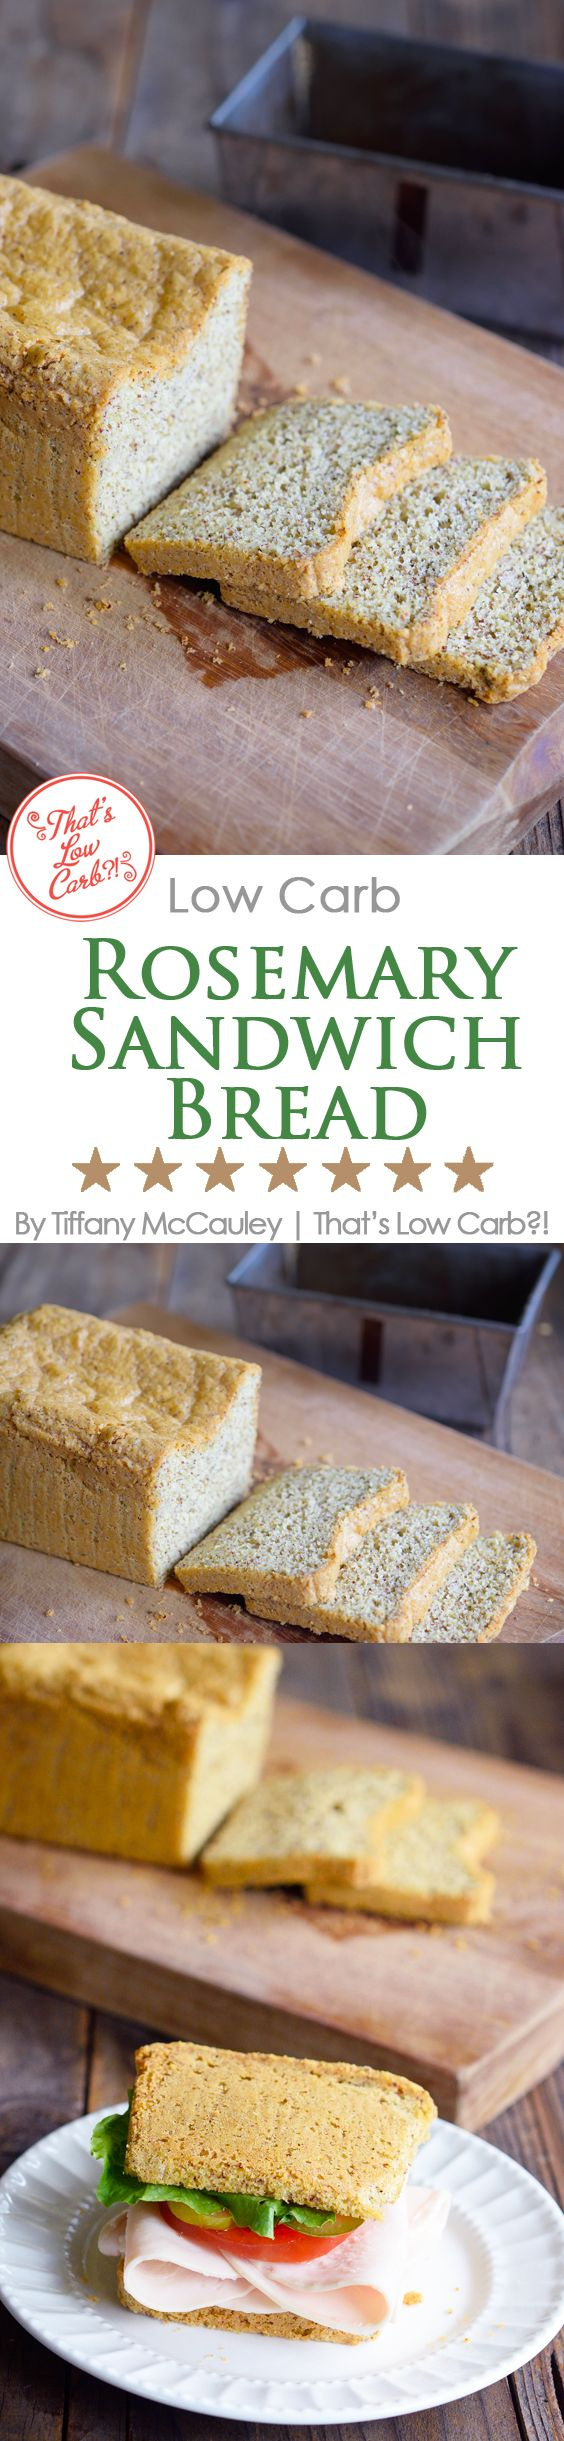 Low Carb Recipes | Low Carb Bread | Low Carb Sandwich Bread | Bread Recipes | Recipes ~ https://www.thatslowcarb.com